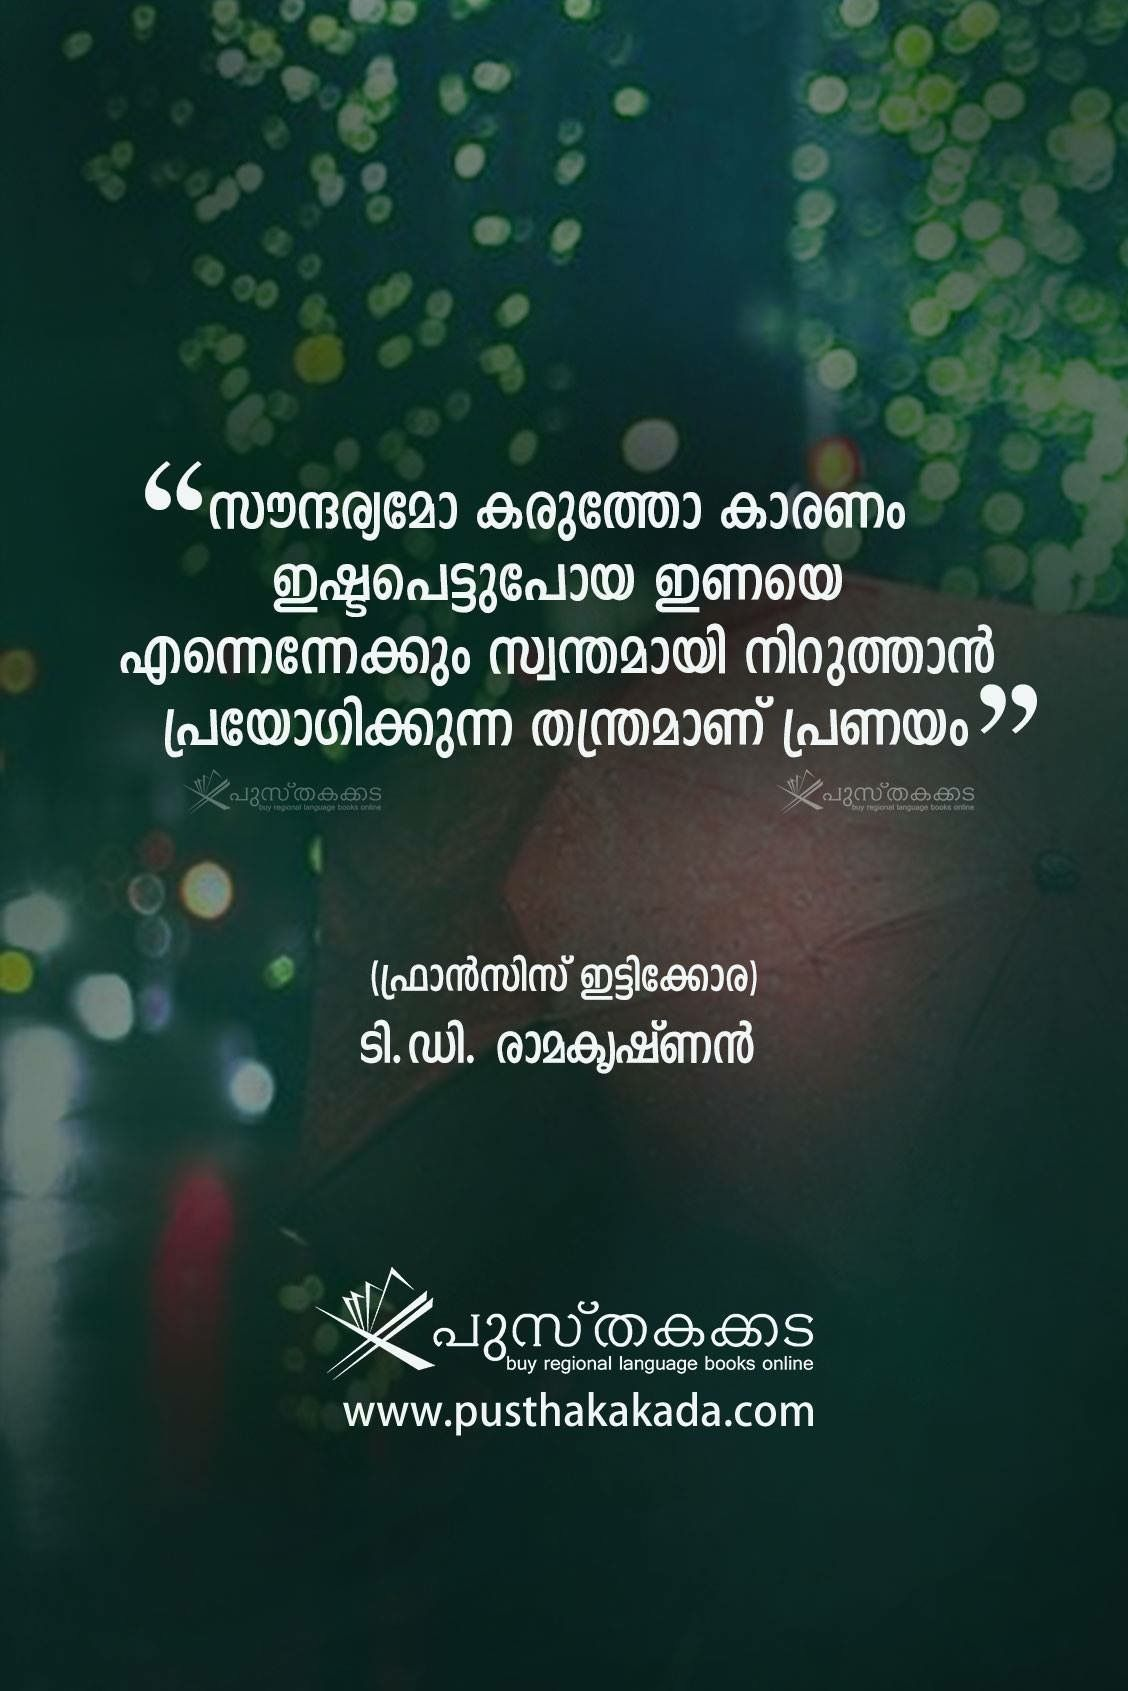 Pin by ALBATROS on quotifyy mee Malayalam quotes, Book